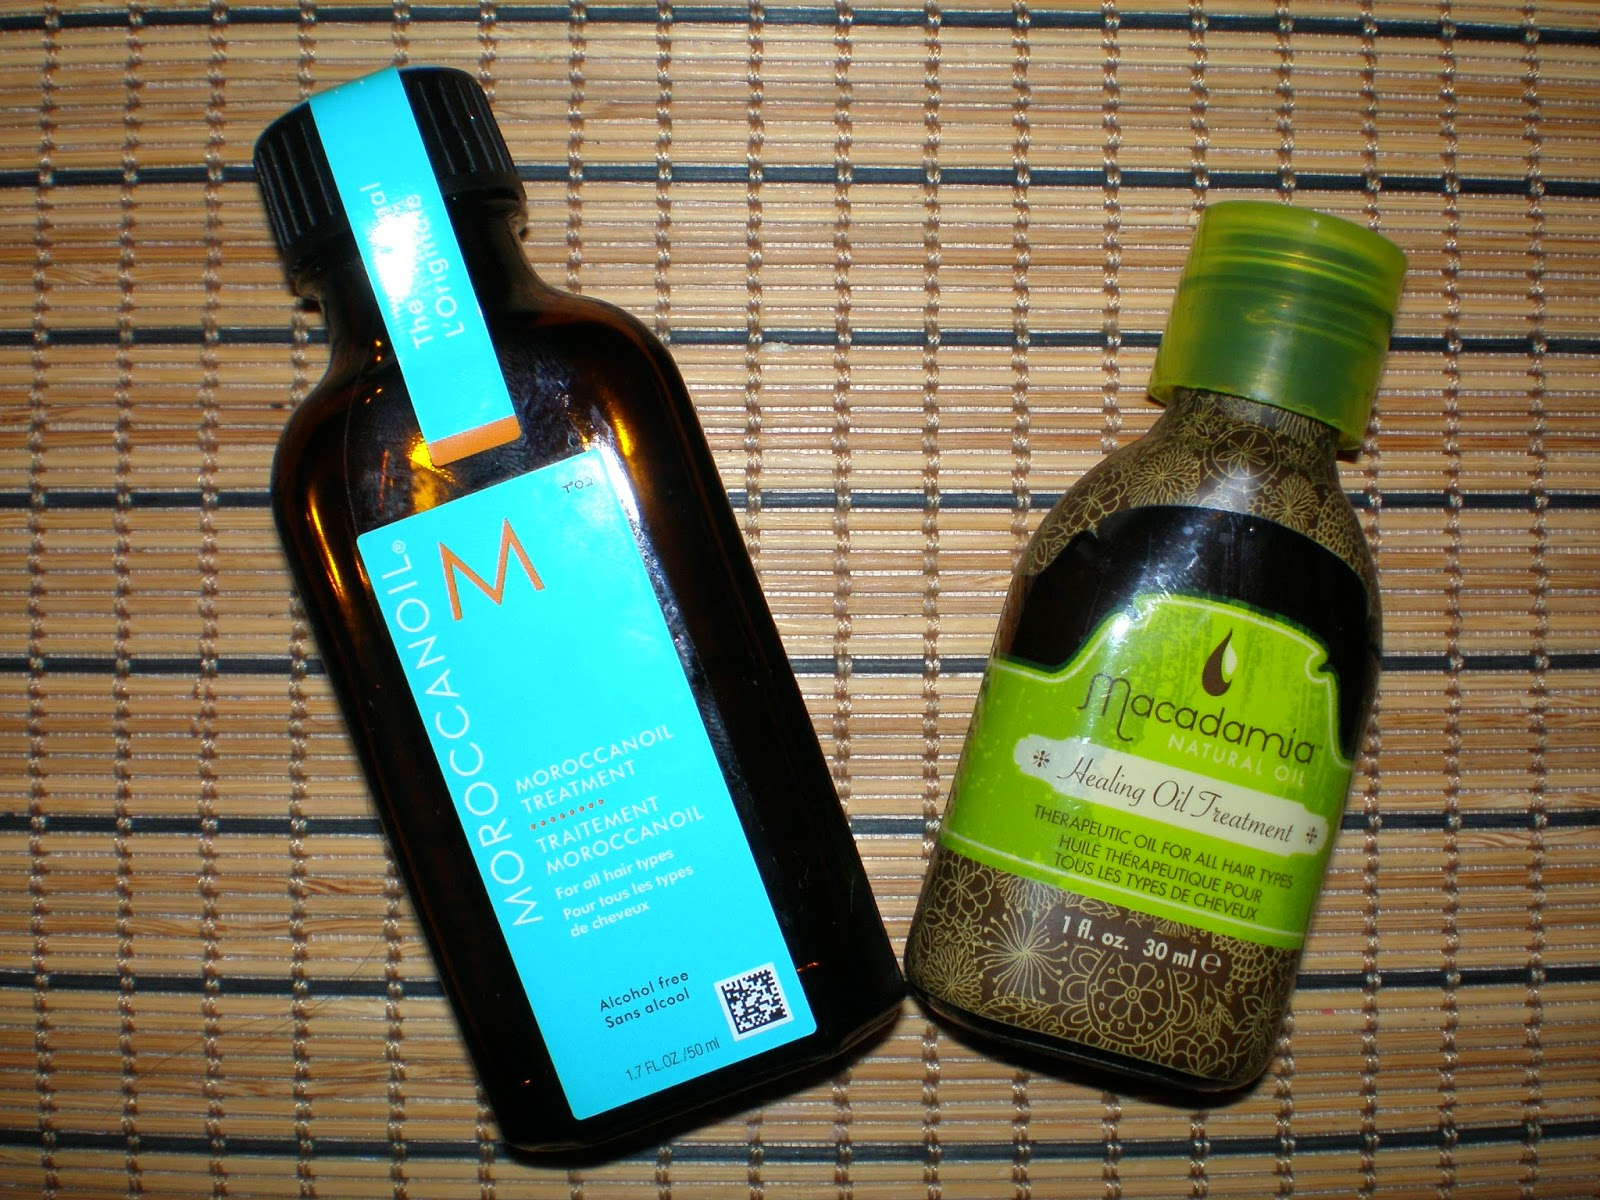 Moroccanoil vs Macadamia Natural Oil